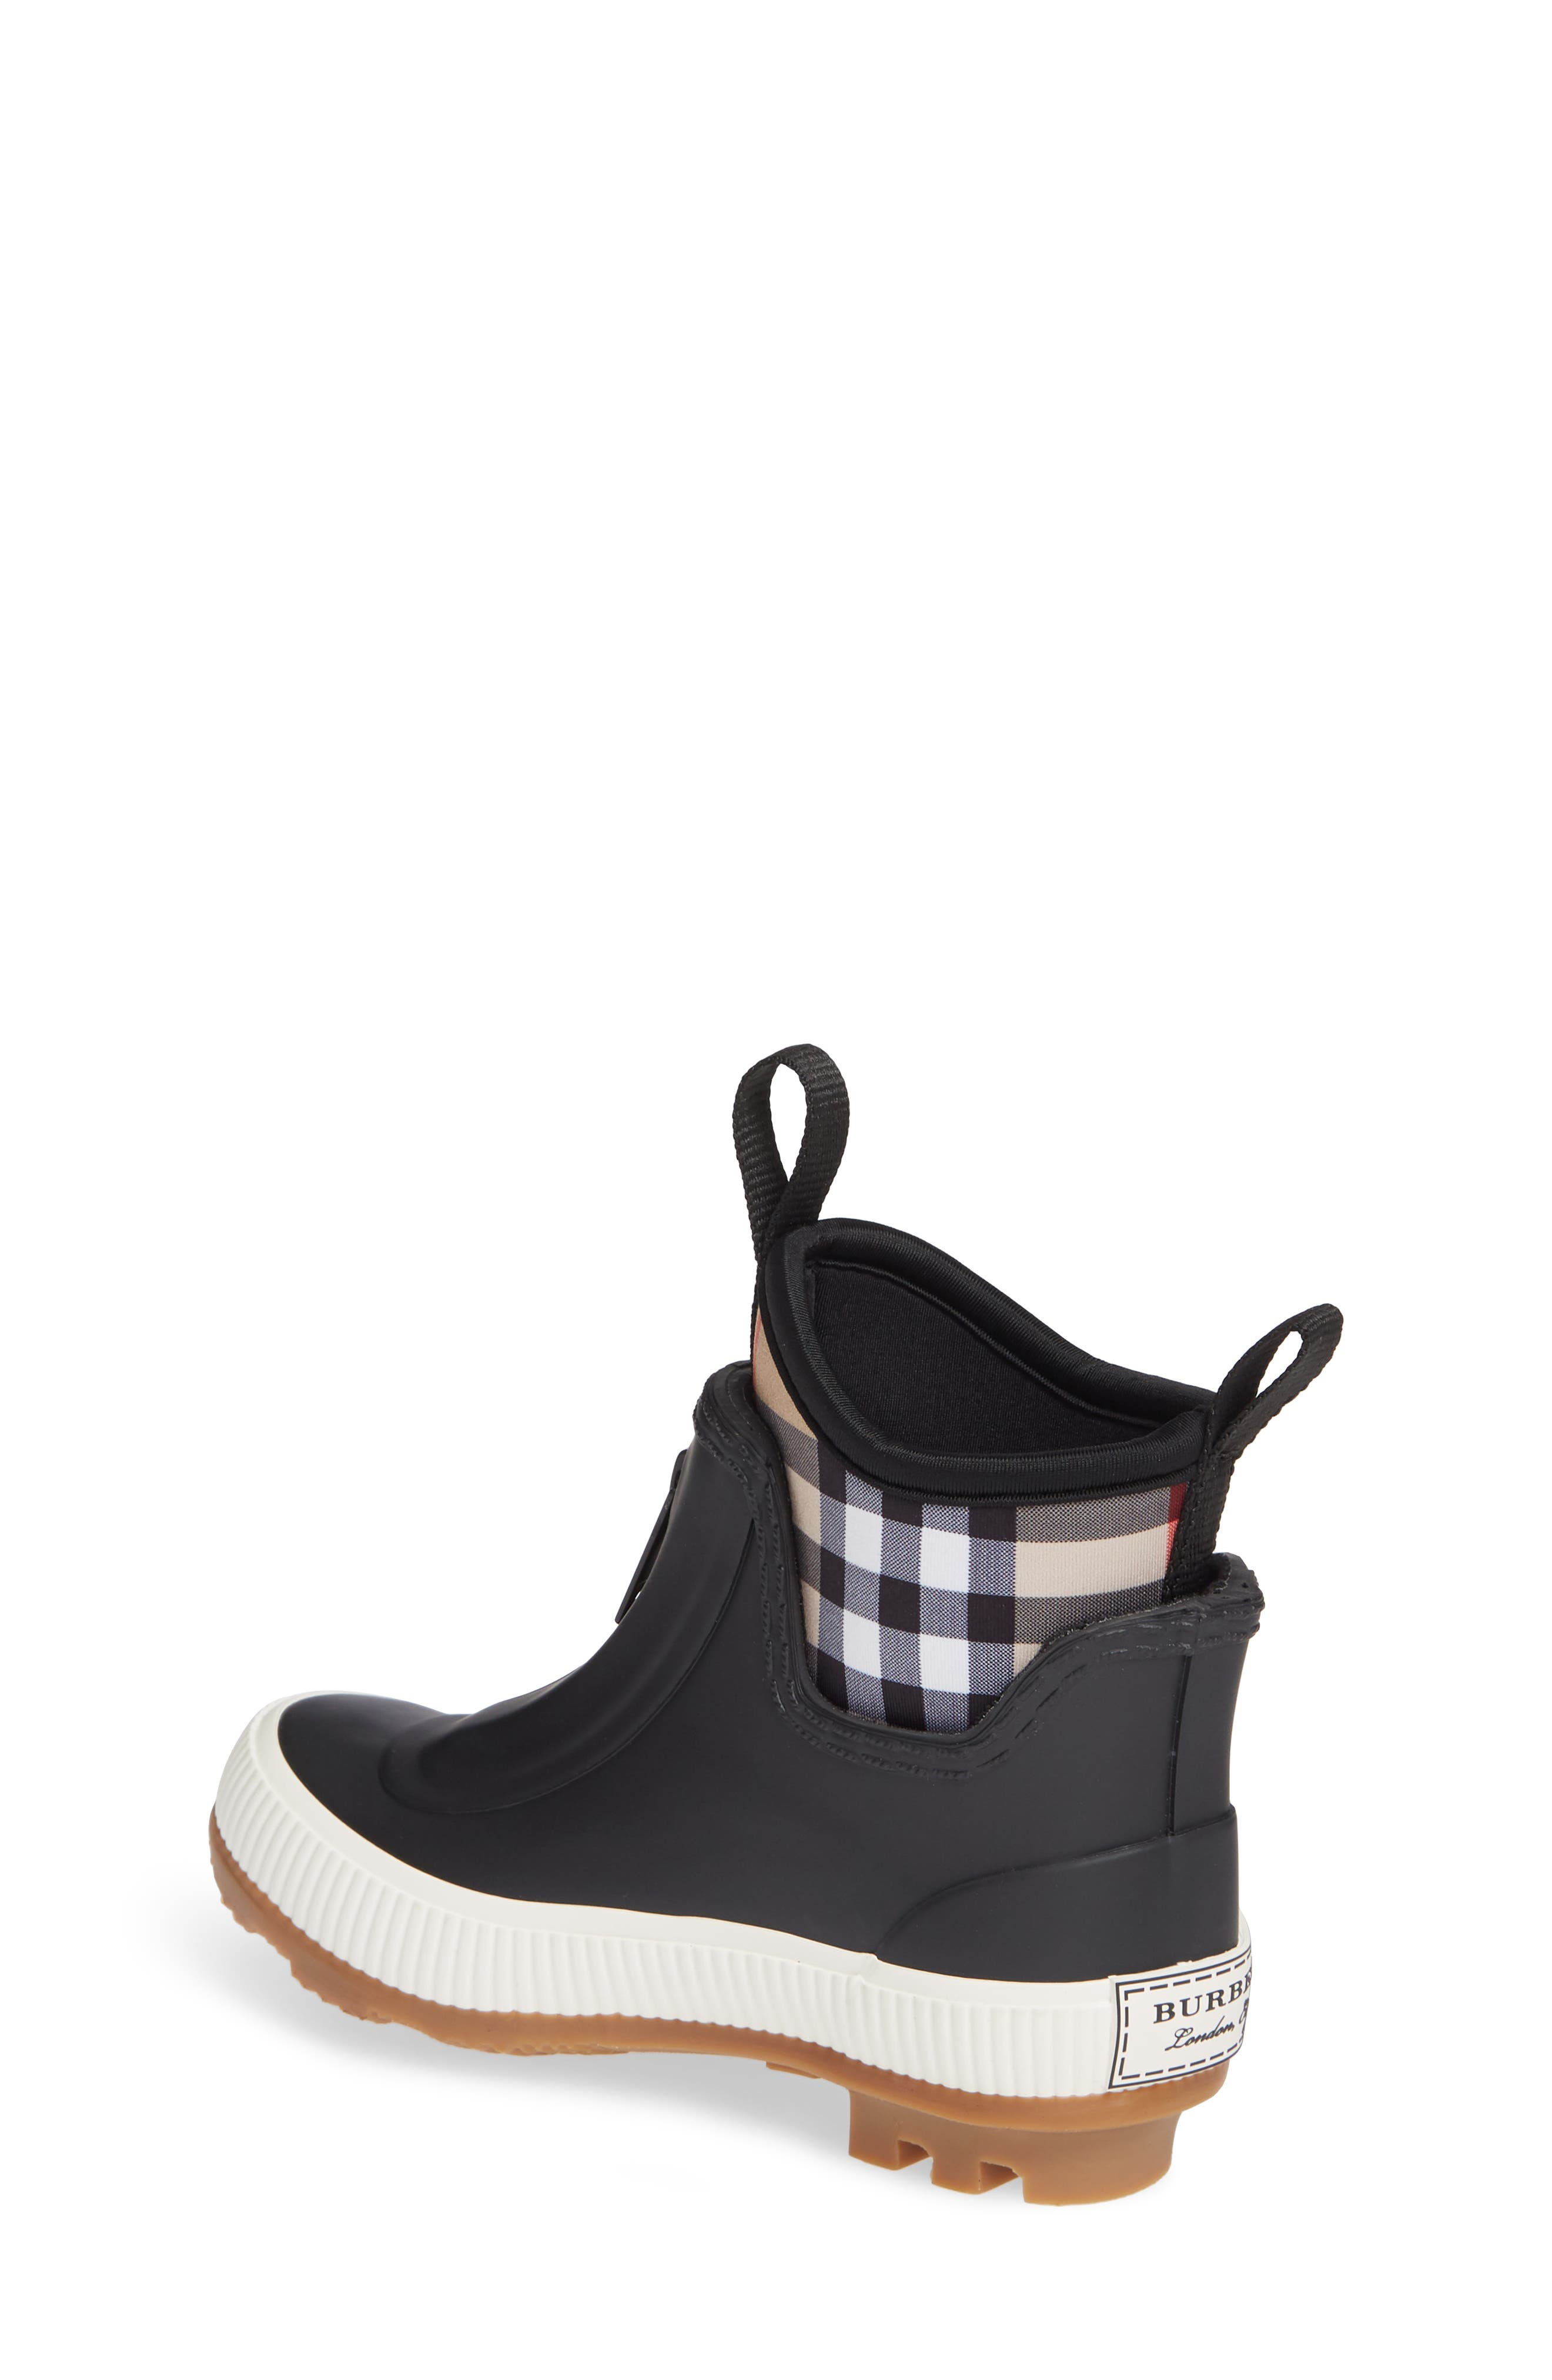 BURBERRY,                             Flinton Waterproof Rain Boot,                             Alternate thumbnail 2, color,                             BLACK